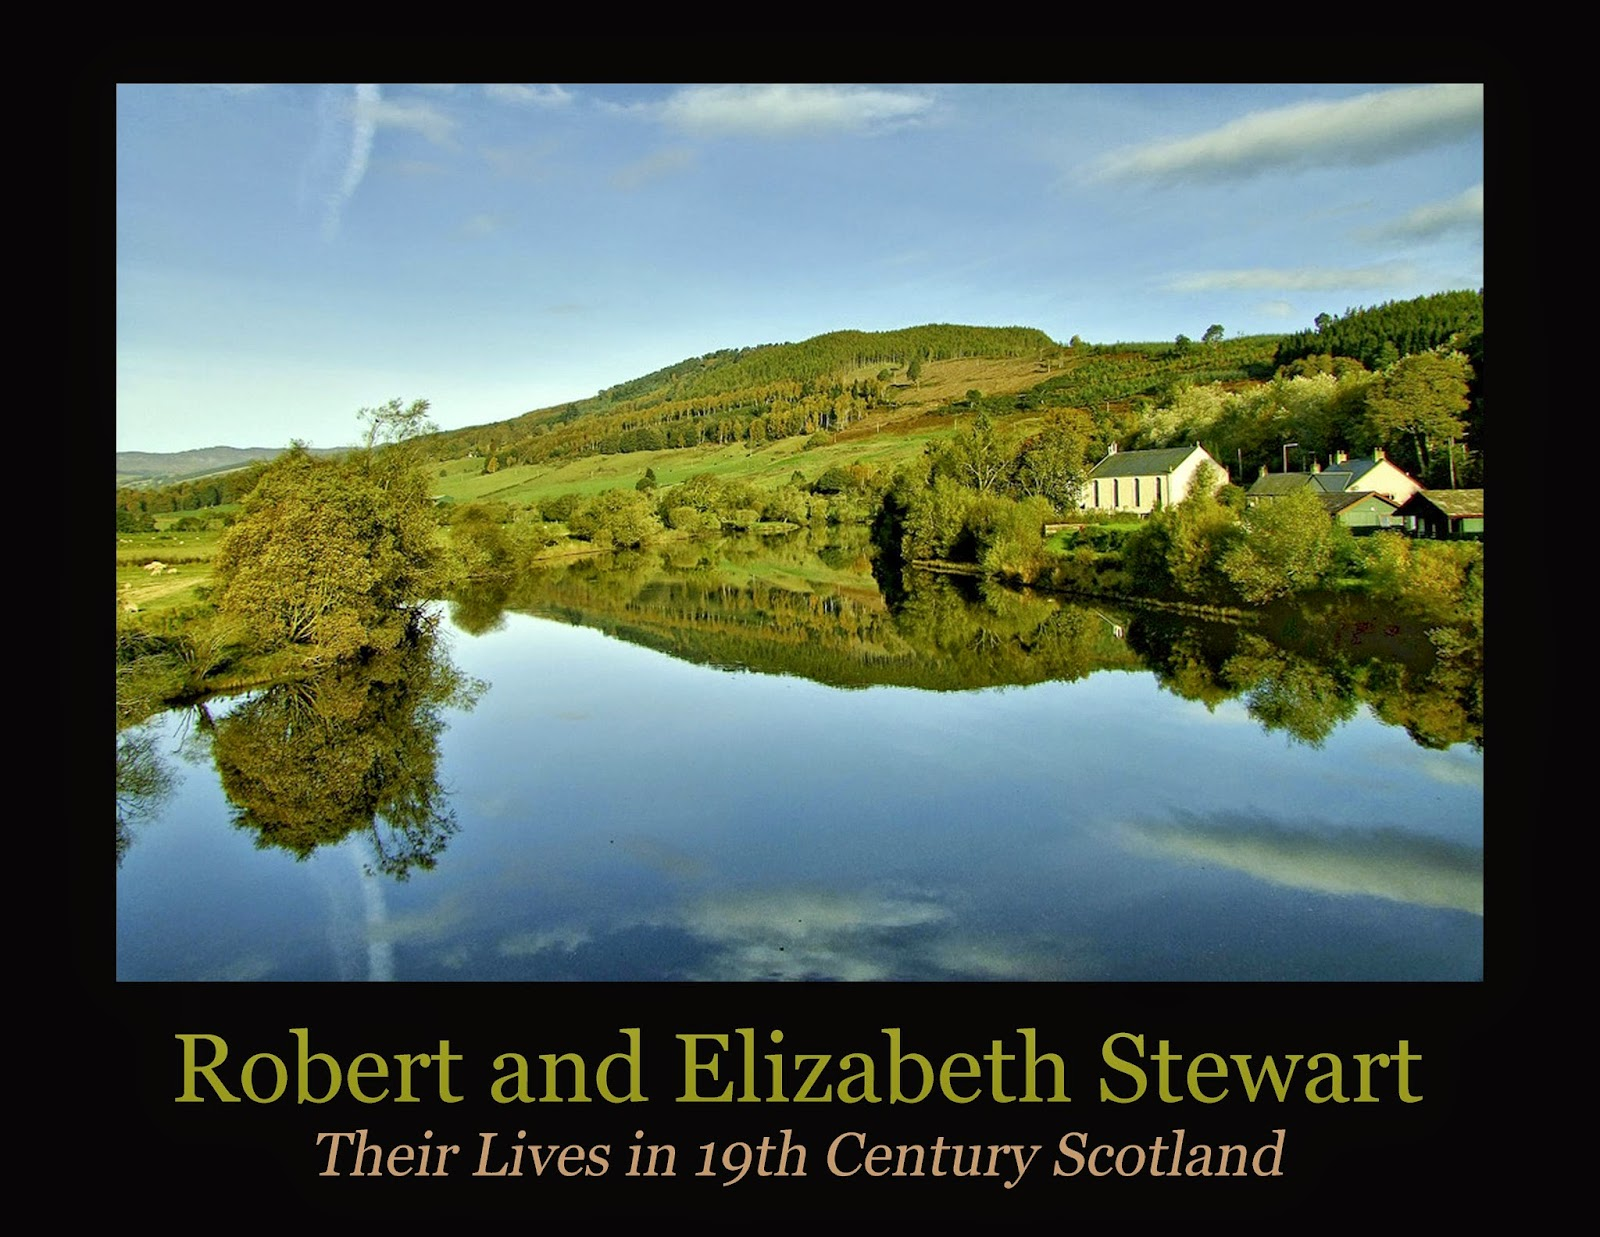 http://gatheringgardiners.blogspot.com/2014/11/robert-and-elizabeth-stewart-their.html